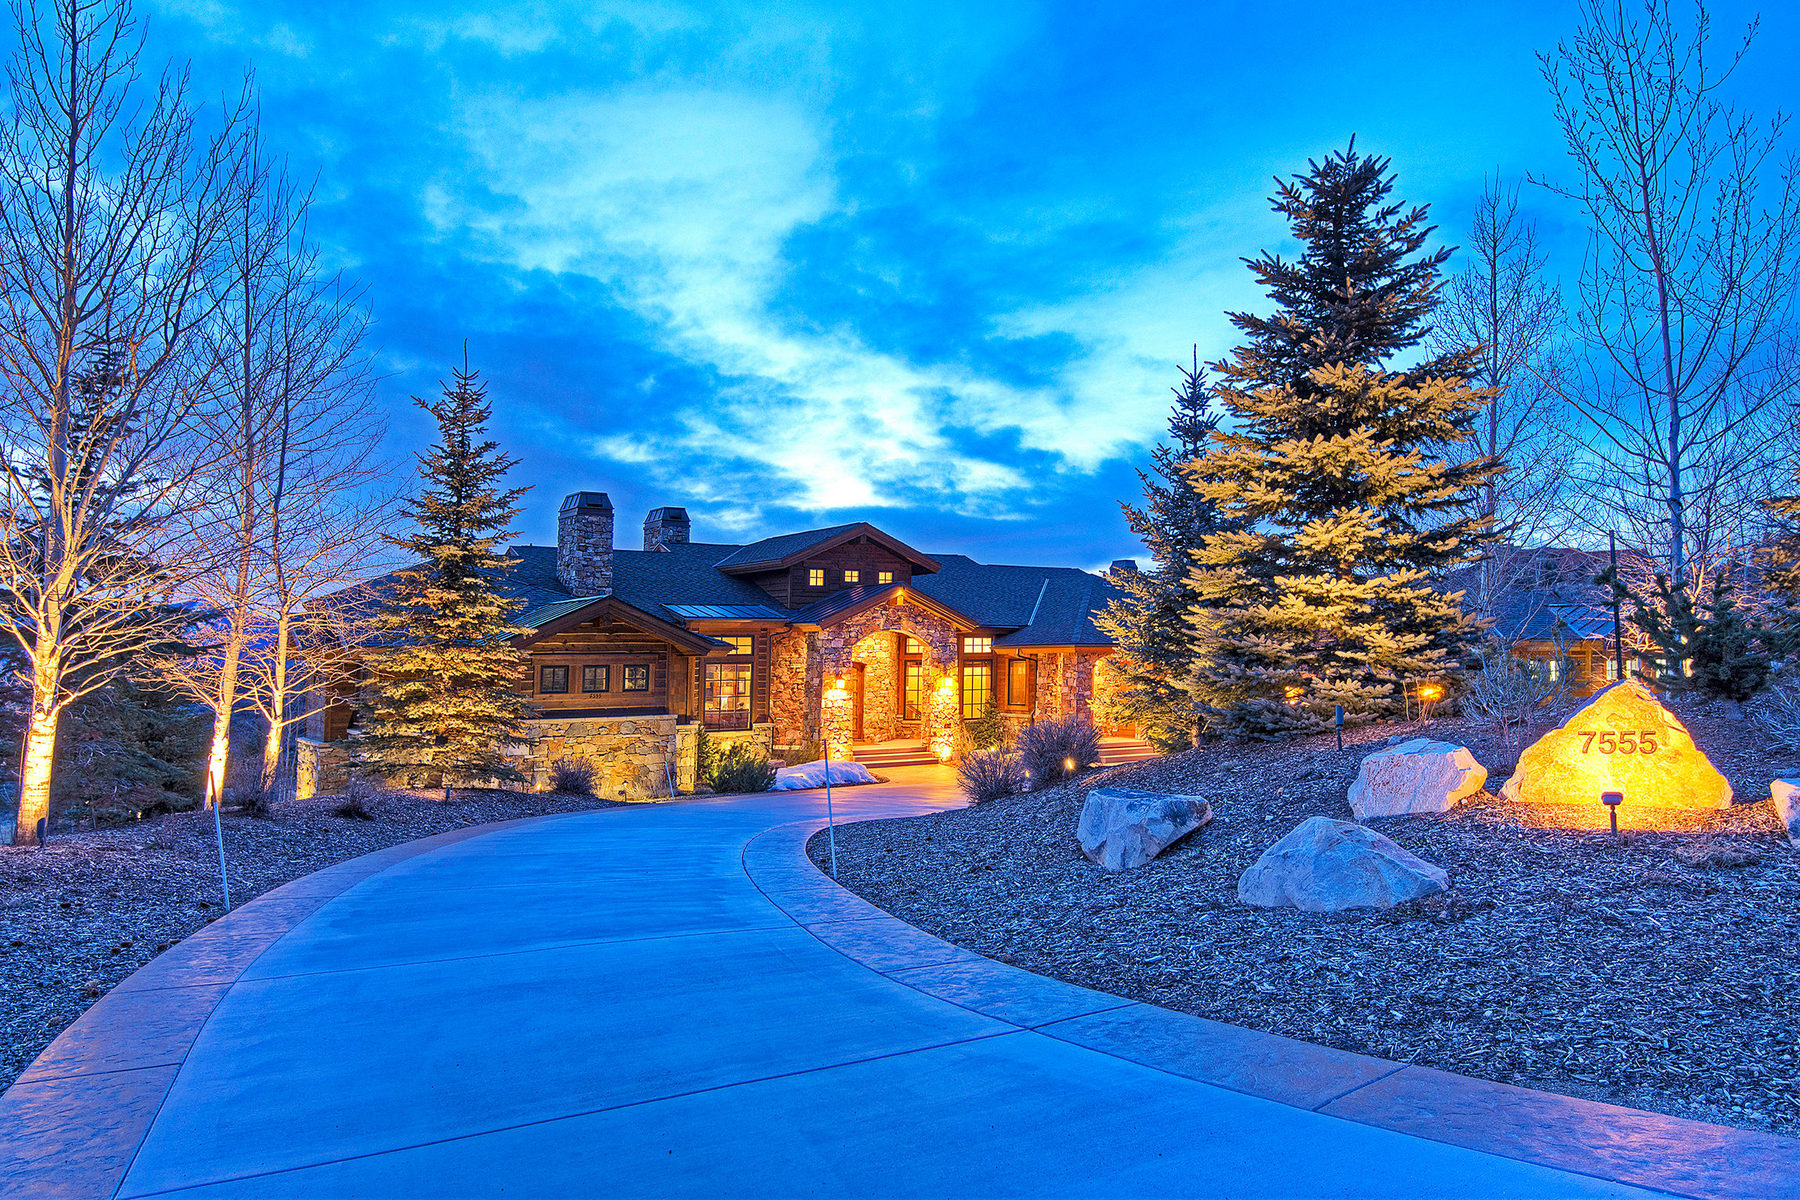 Nhà ở một gia đình vì Bán tại Stunning Promontory Mountain Home With Golf & Ski Resort Views 7555 N. Ranch Club Trail Lot #23 Park City, Utah 84098 Hoa Kỳ